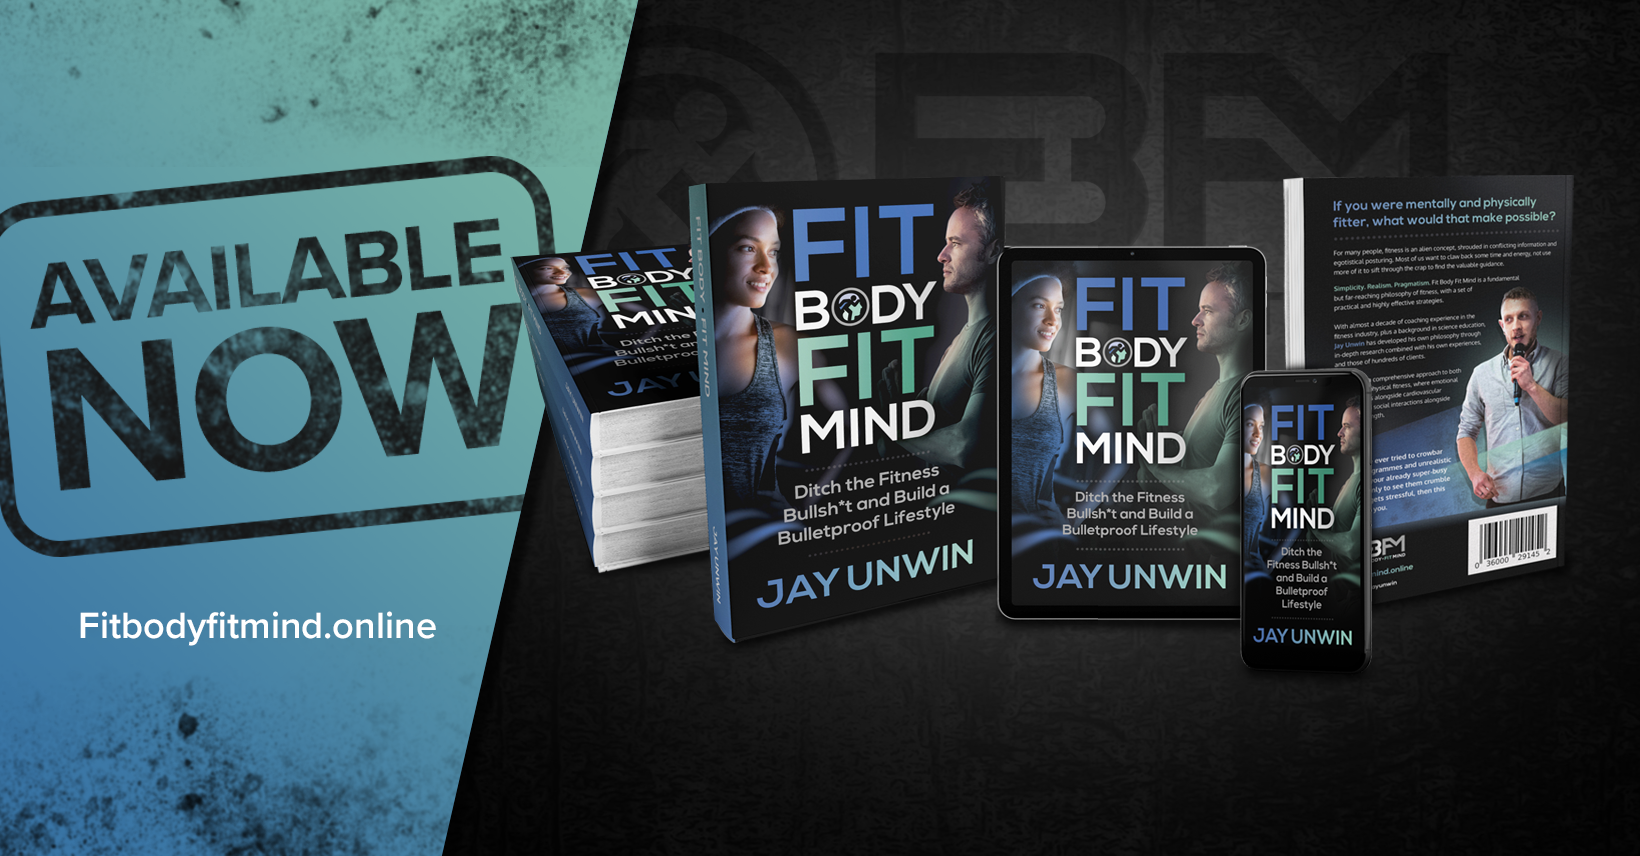 Fit Body Fit Mind book